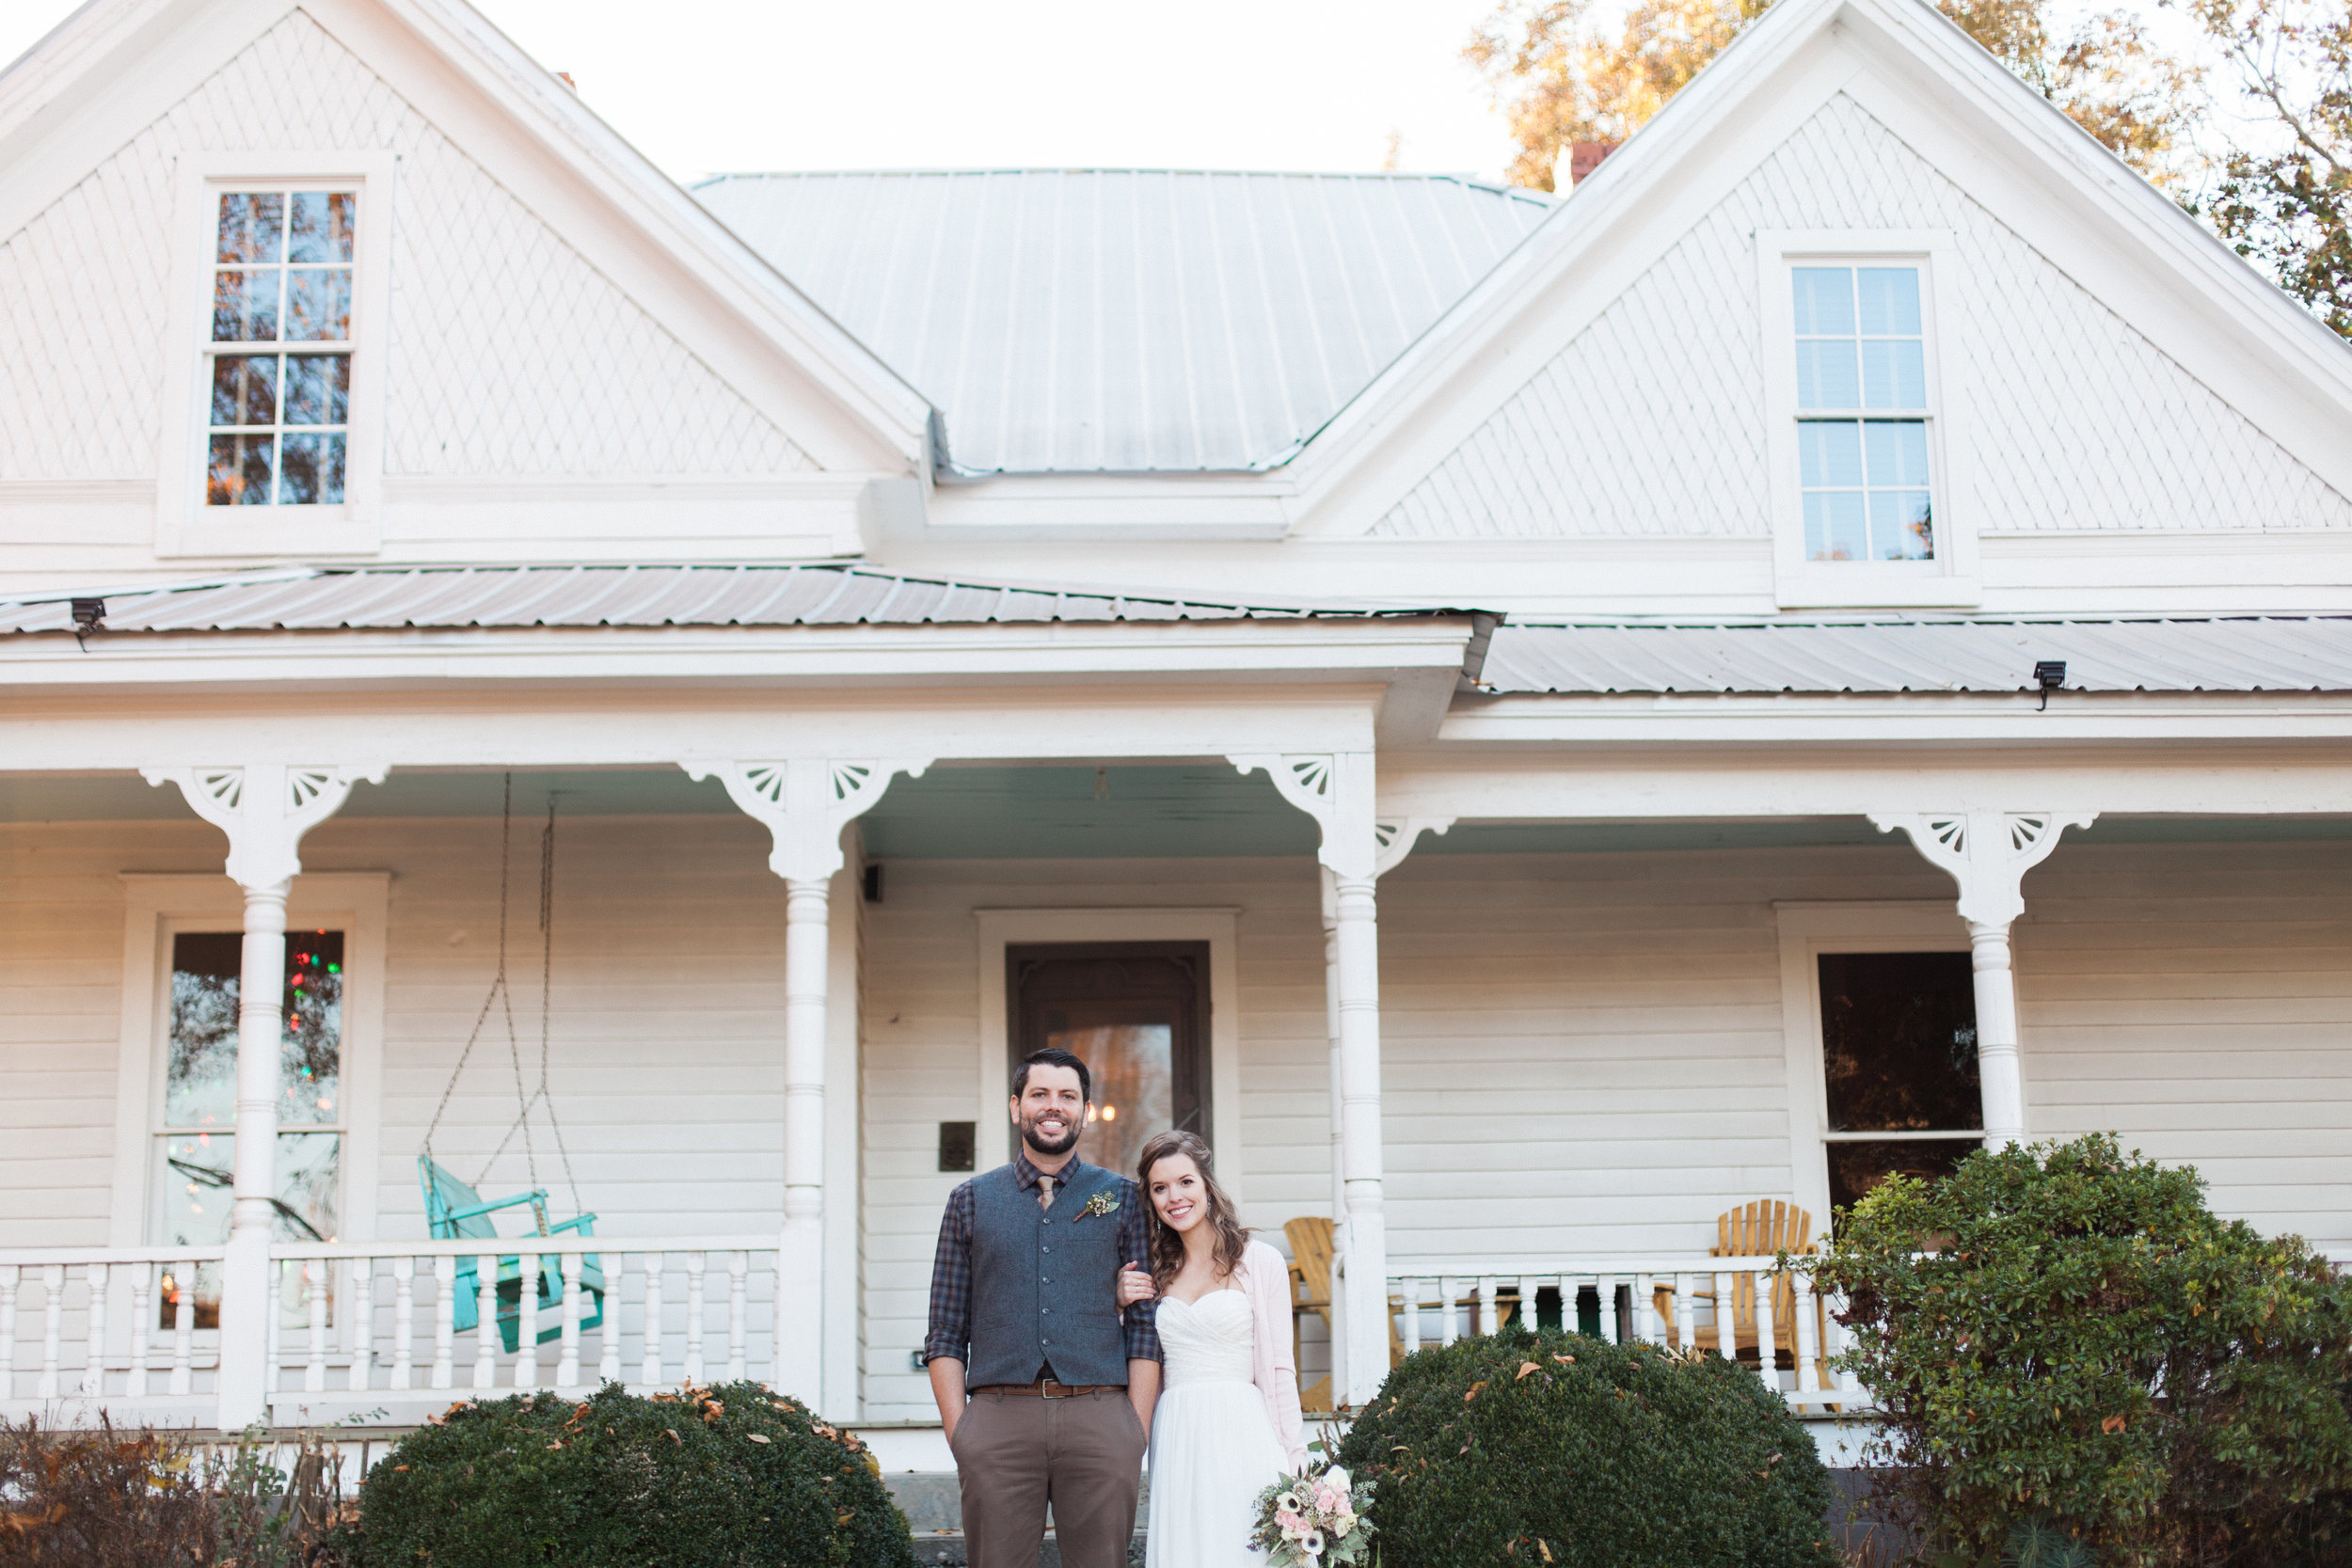 Here's us in one of our wedding photos! We had a November wedding and loved it! pc: Jessica Pendley Photography